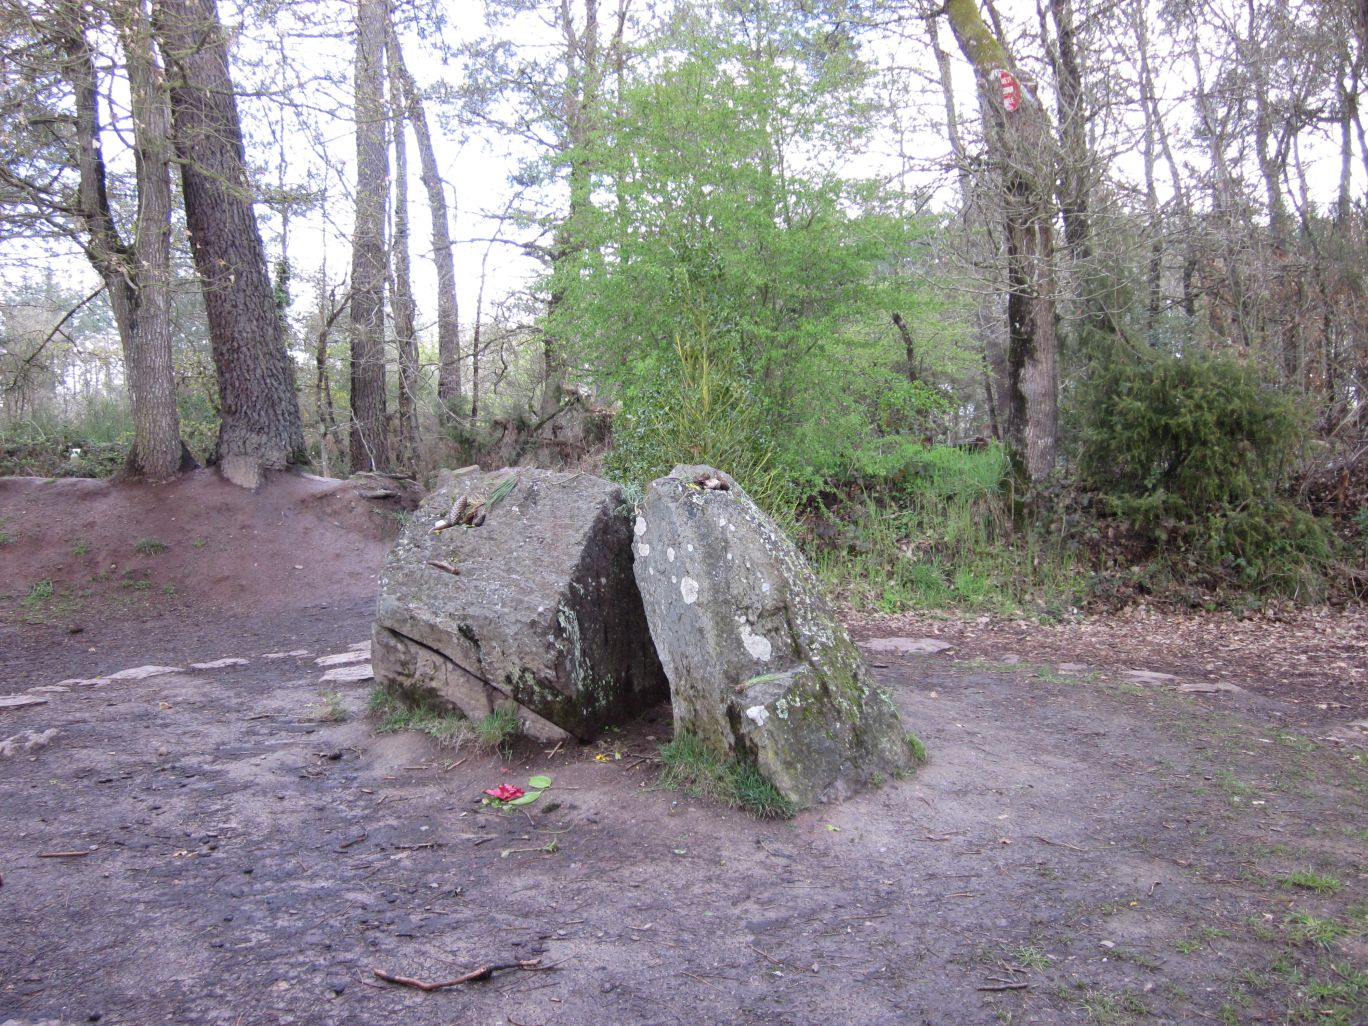 So-called Merlin's tomb, Forest of Paimpont © Wendy Mewes